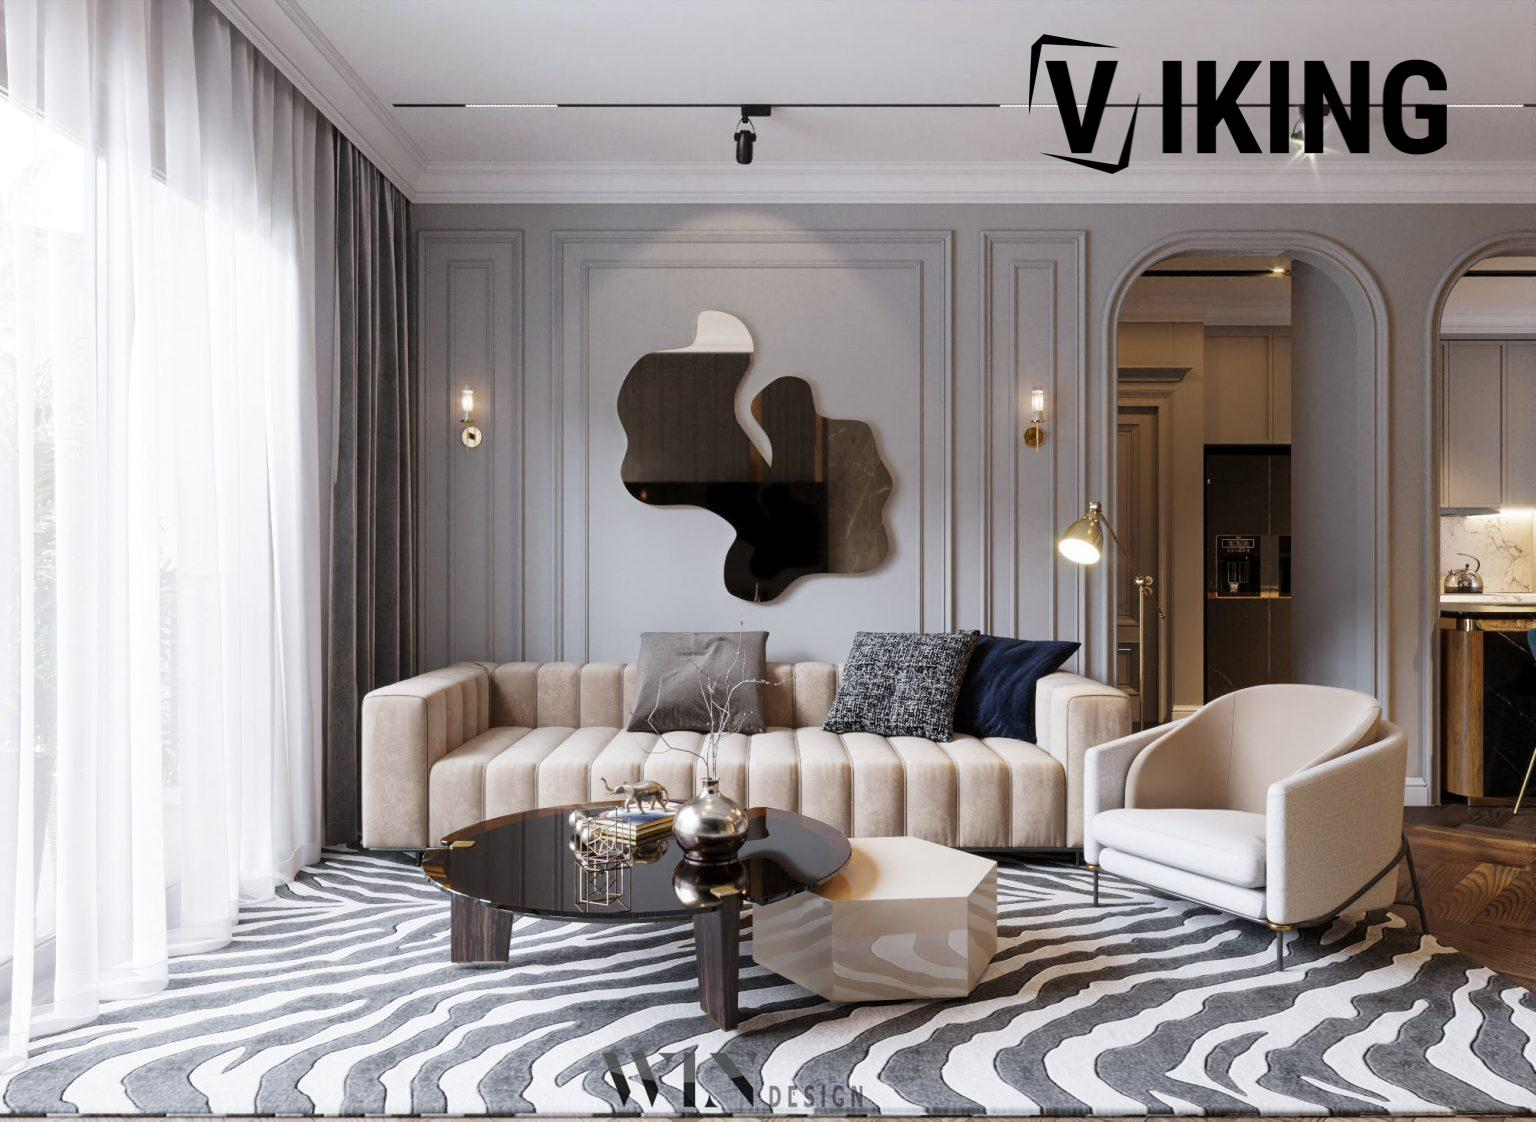 4207.Interior Apartment Scenes 3dsmax File free download by Nguyen Vinh 1 1536x1122 1